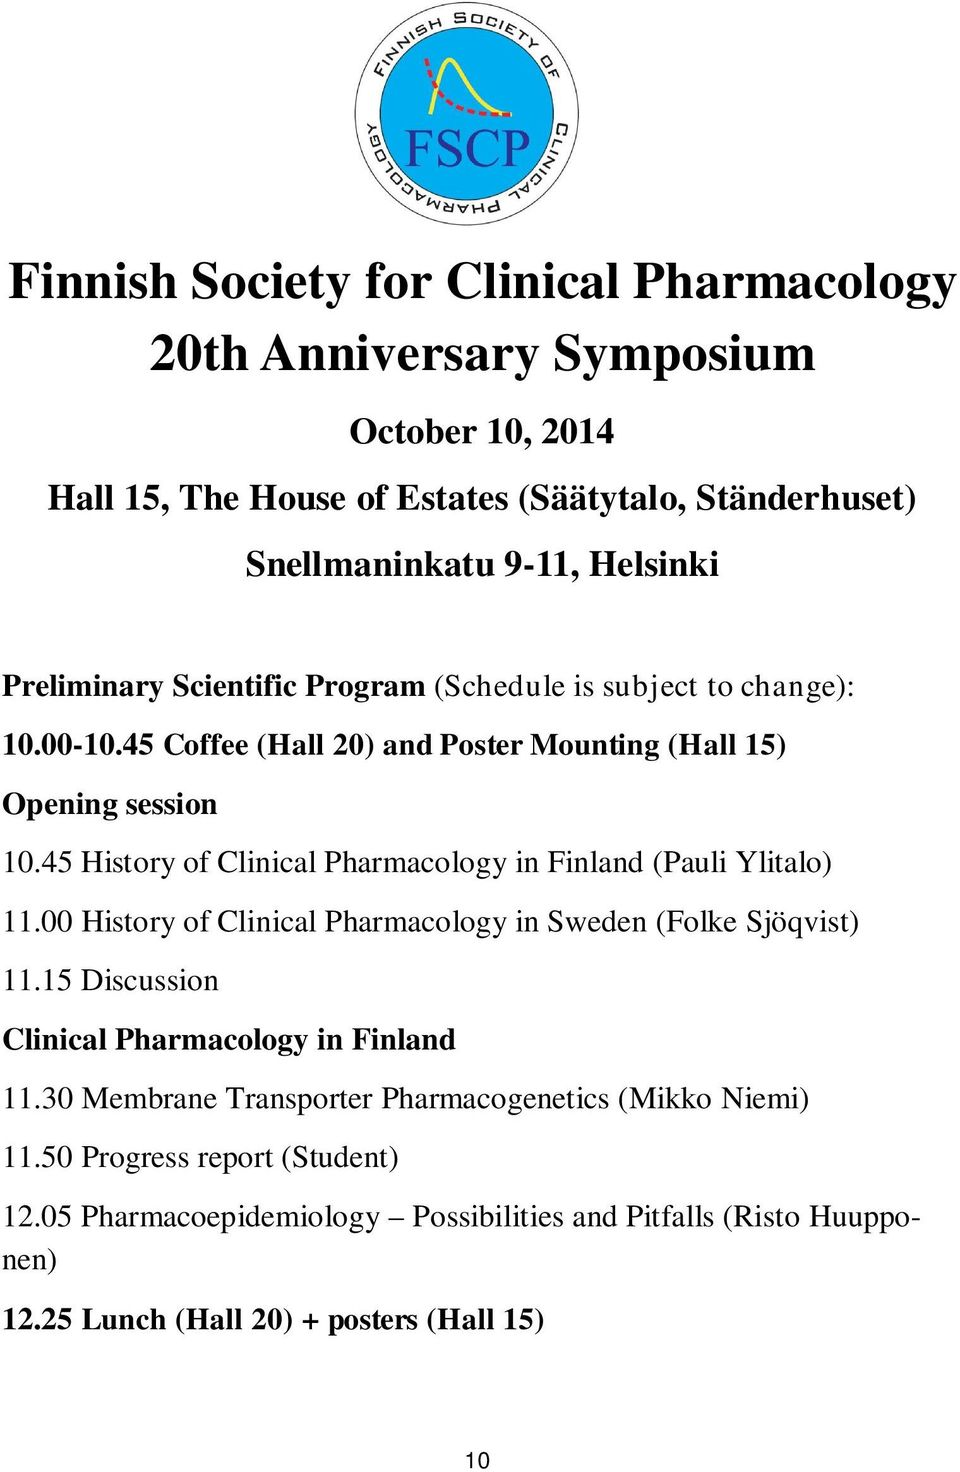 45 History of Clinical Pharmacology in Finland (Pauli Ylitalo) 11.00 History of Clinical Pharmacology in Sweden (Folke Sjöqvist) 11.